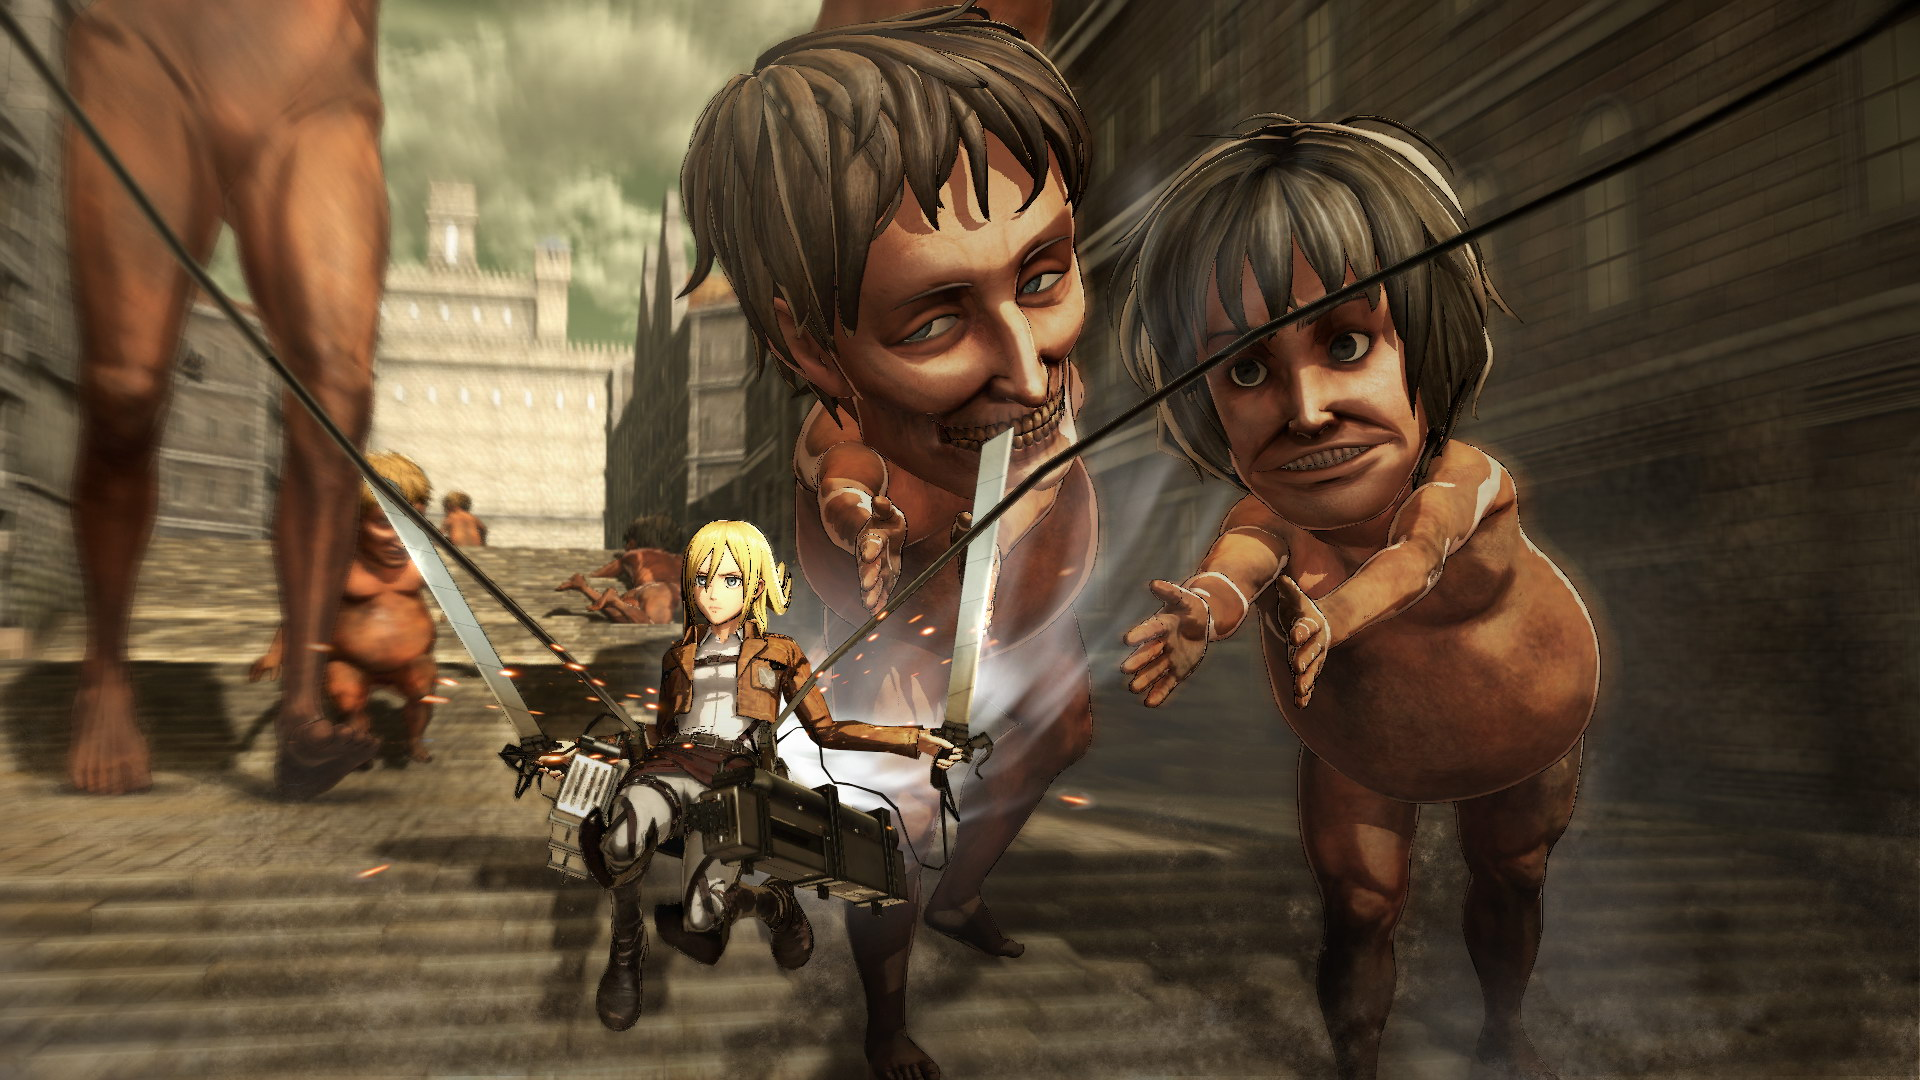 Attack on Titan Episode 3 Dubbed  cartooncrazytv